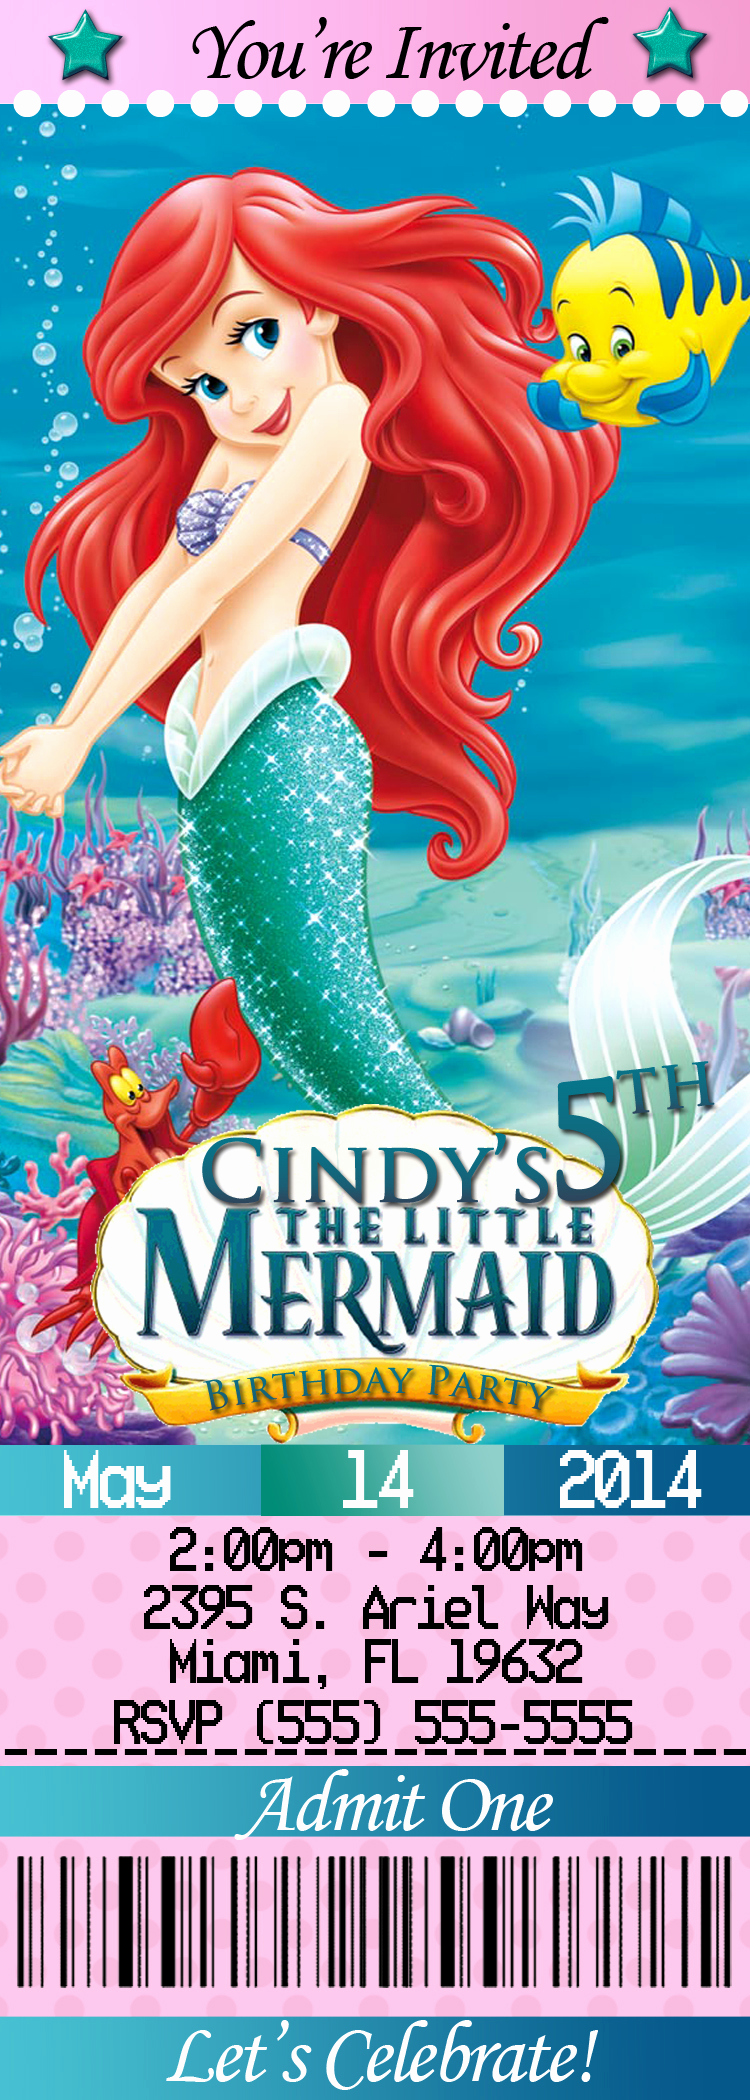 Little Mermaid Invitation Wording Awesome Little Mermaid Birthday Invitations